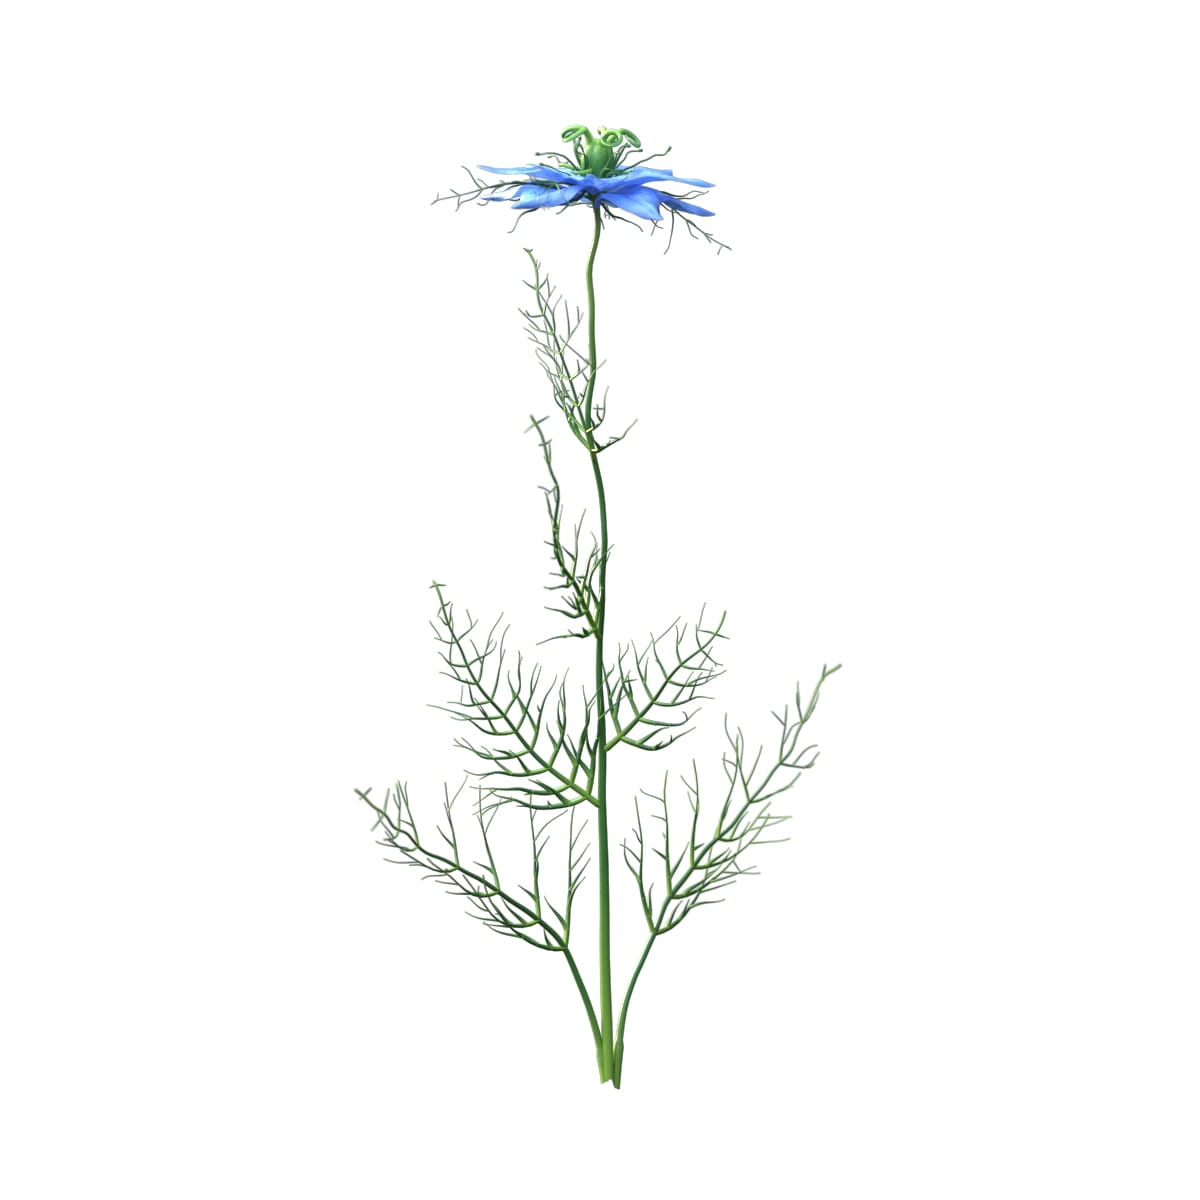 Nigella sativa 36 AM214 Archmodels